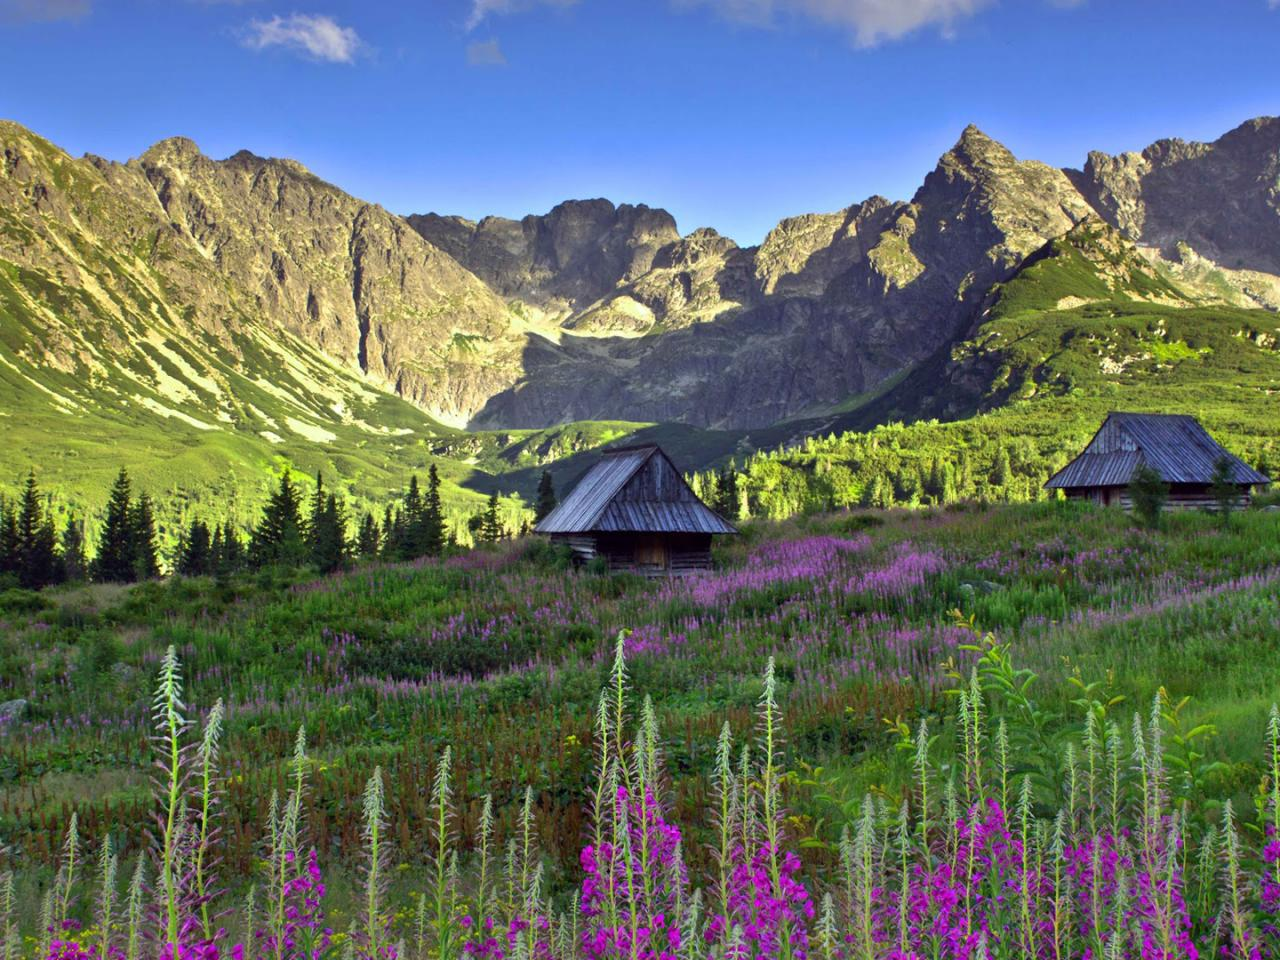 Hd Wallpapers Butterflies Widescreen Polish Tatra Mountains Wallpaper In Hd Hd Wallpapers